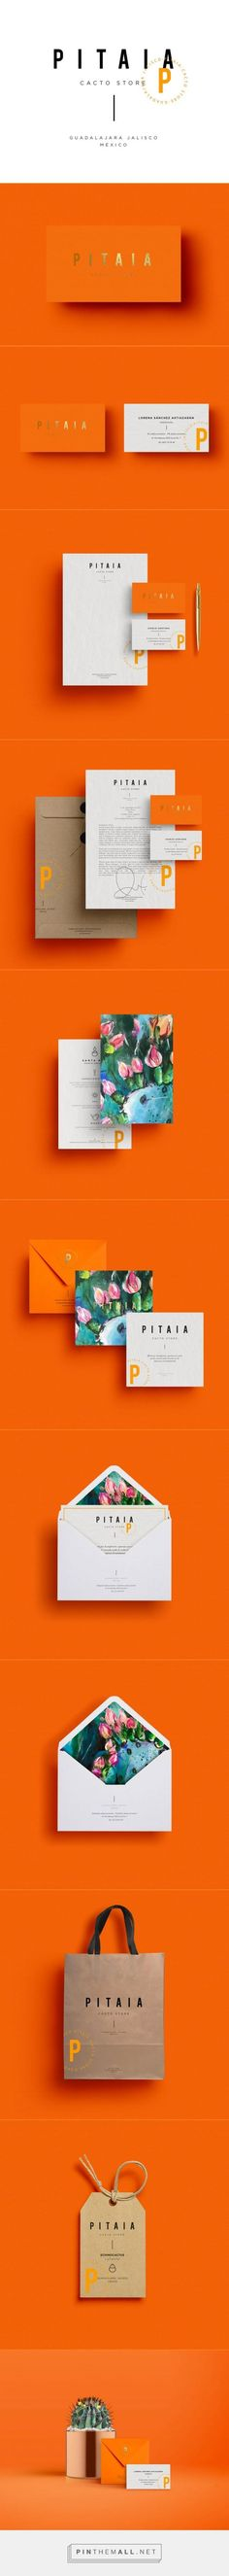 Pitaia Branding by Malarte Studio – Inspiration Grid | Design Inspiration